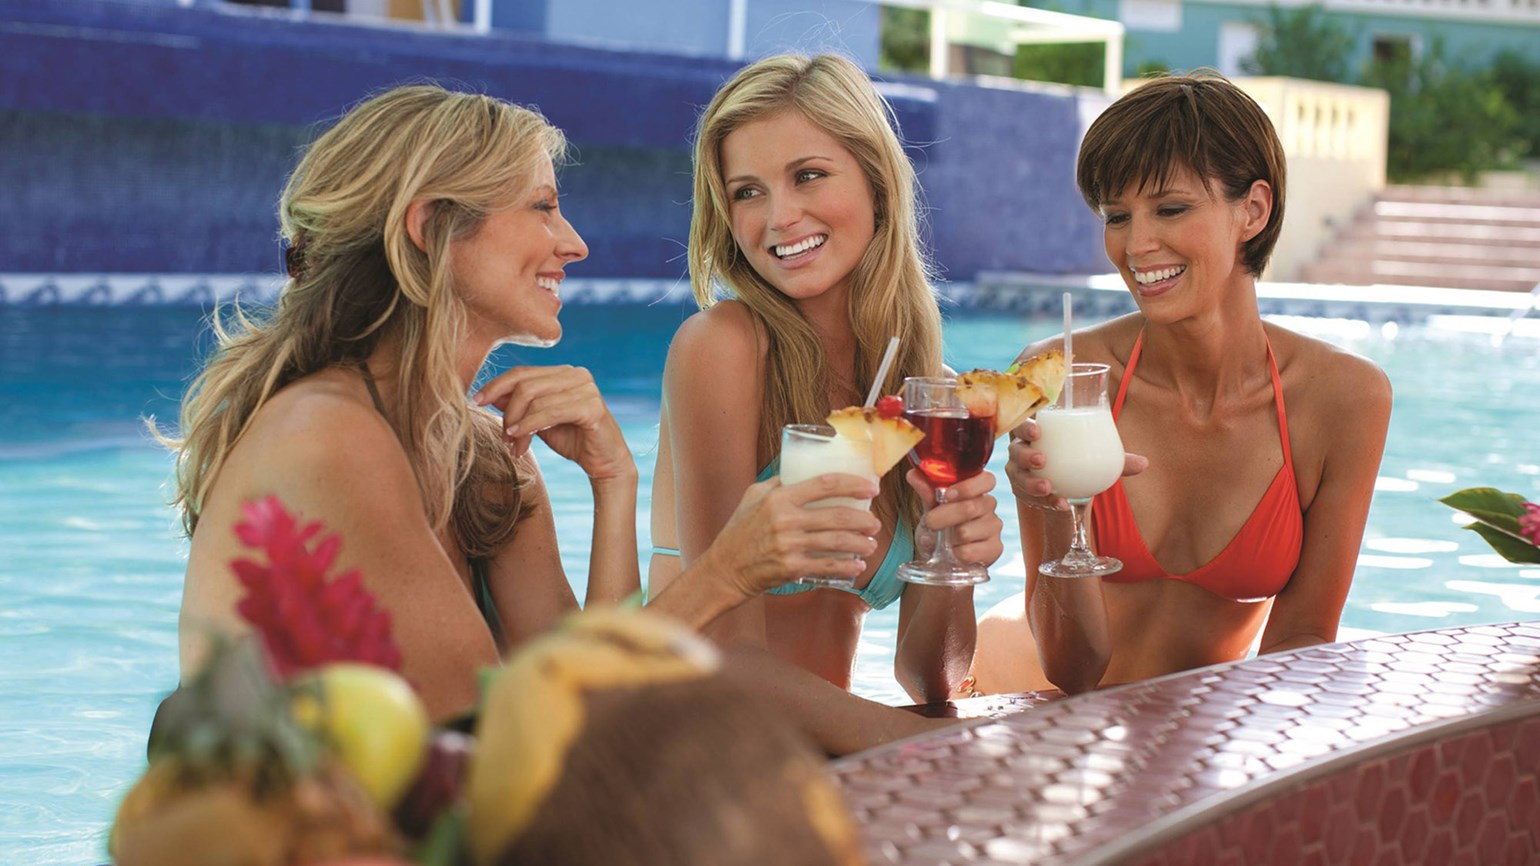 Sandals pitches getaways for the ladies